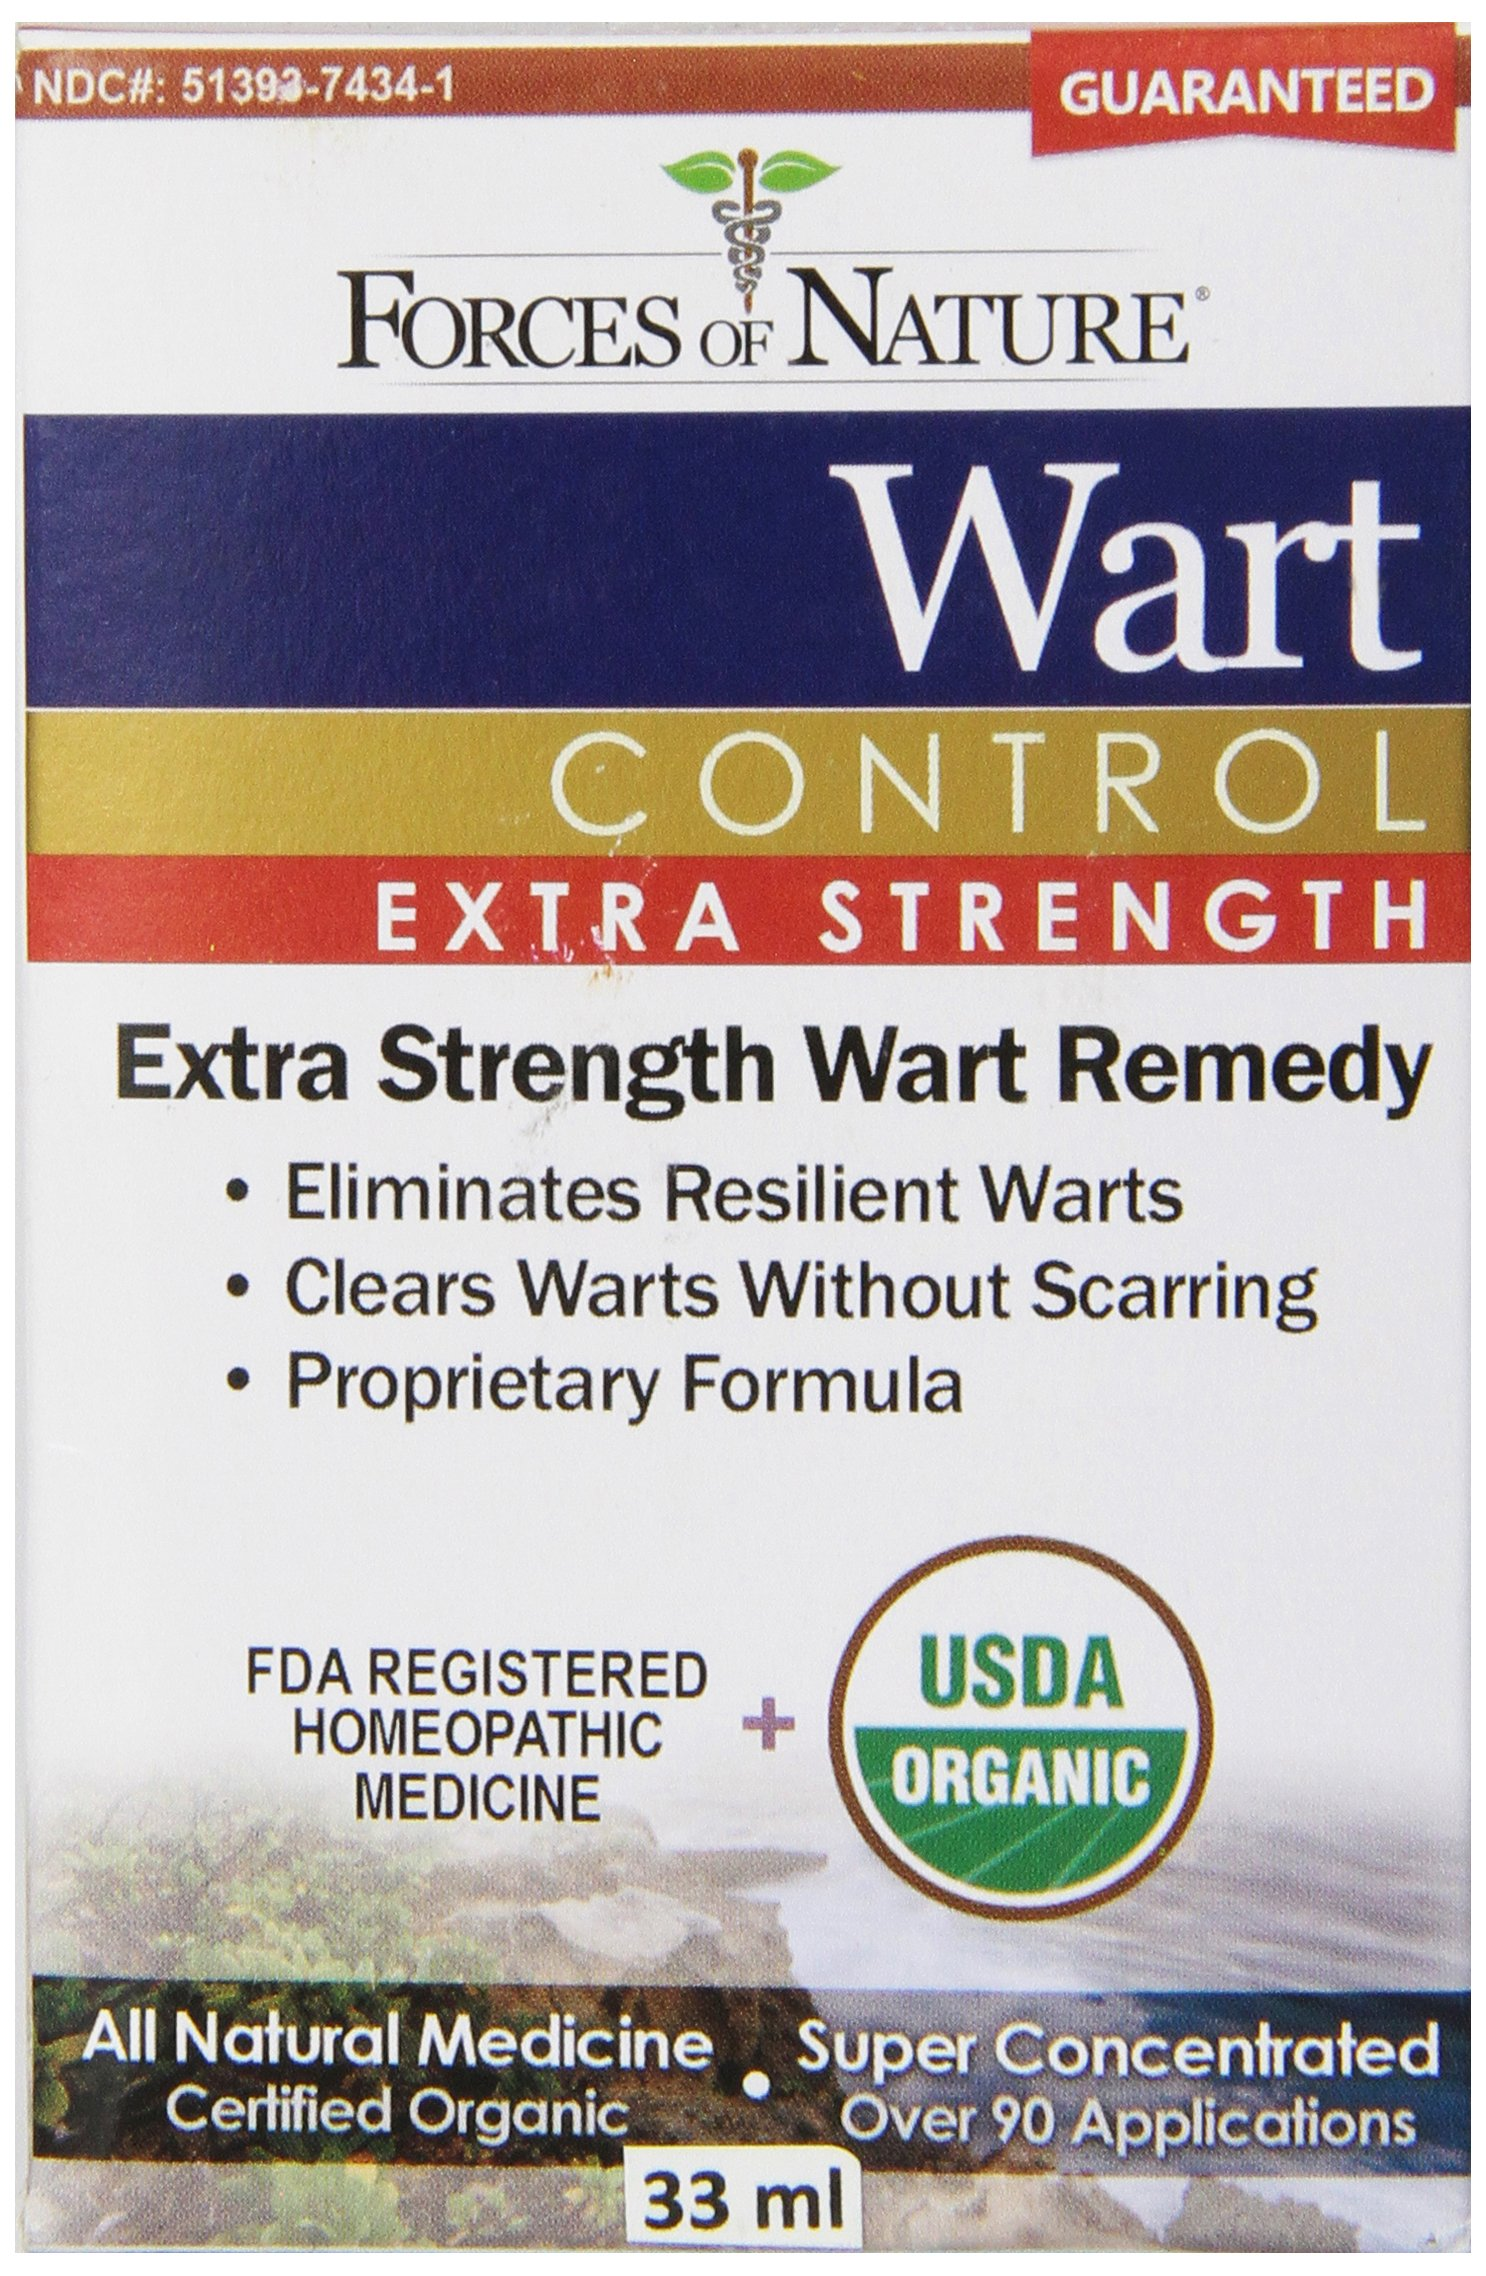 Forces of Nature Wart Control Extra Strength, 33 ml by Forces Of Nature